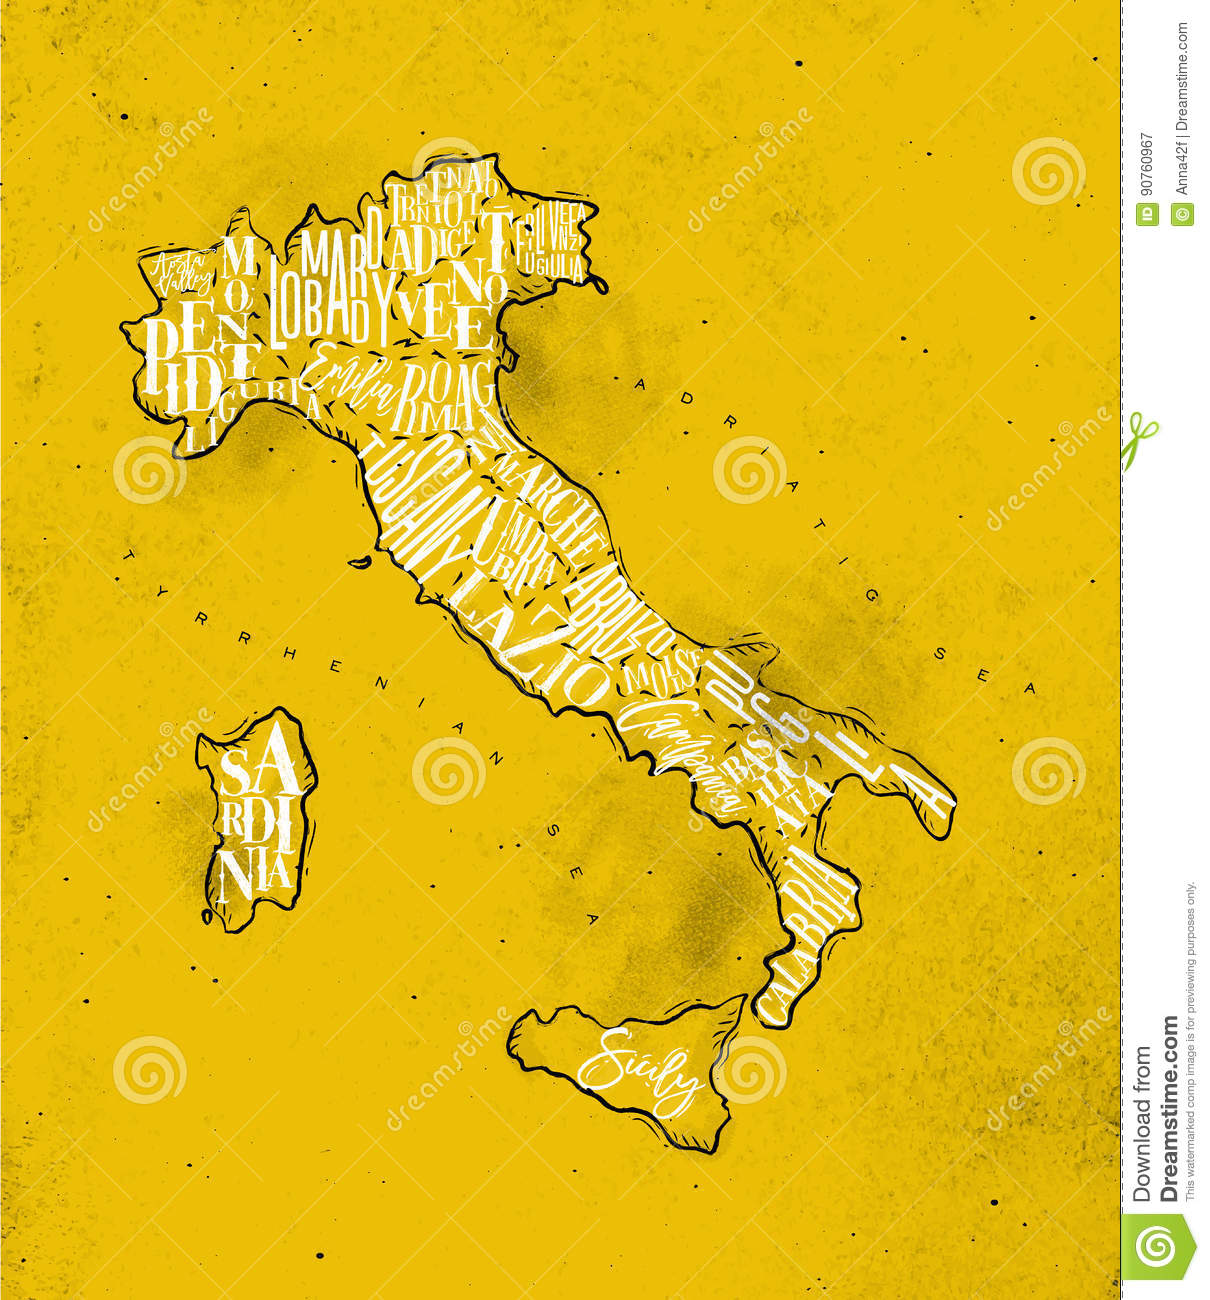 Map Italy vintage yellow stock vector. Illustration of poster - 90760967